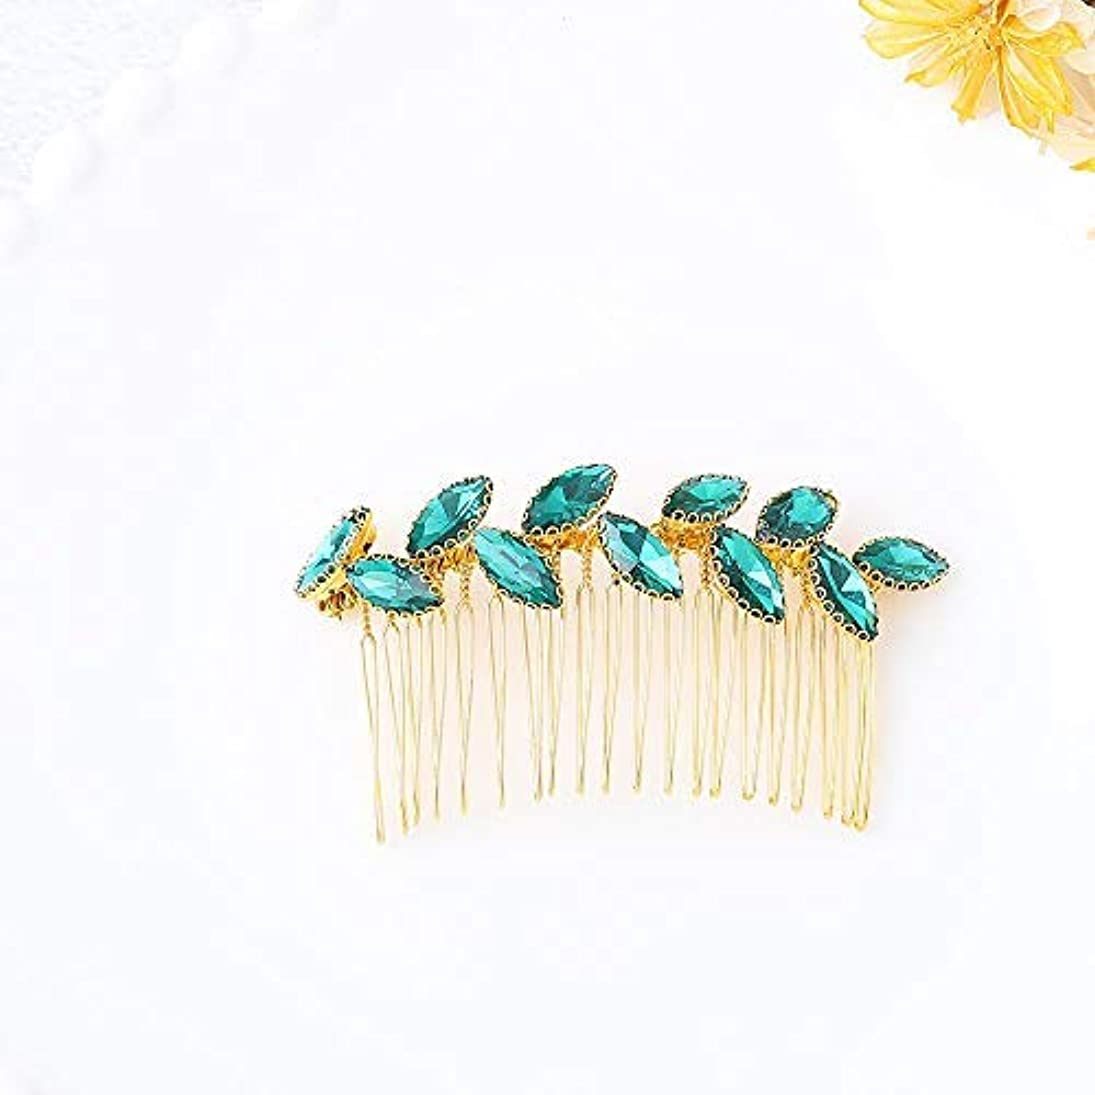 そうでなければ建物アセンブリJovono Bride Wedding Hair Comb Bridal Headpieces with Green Rhinestone for Women and Girls (Gold) [並行輸入品]